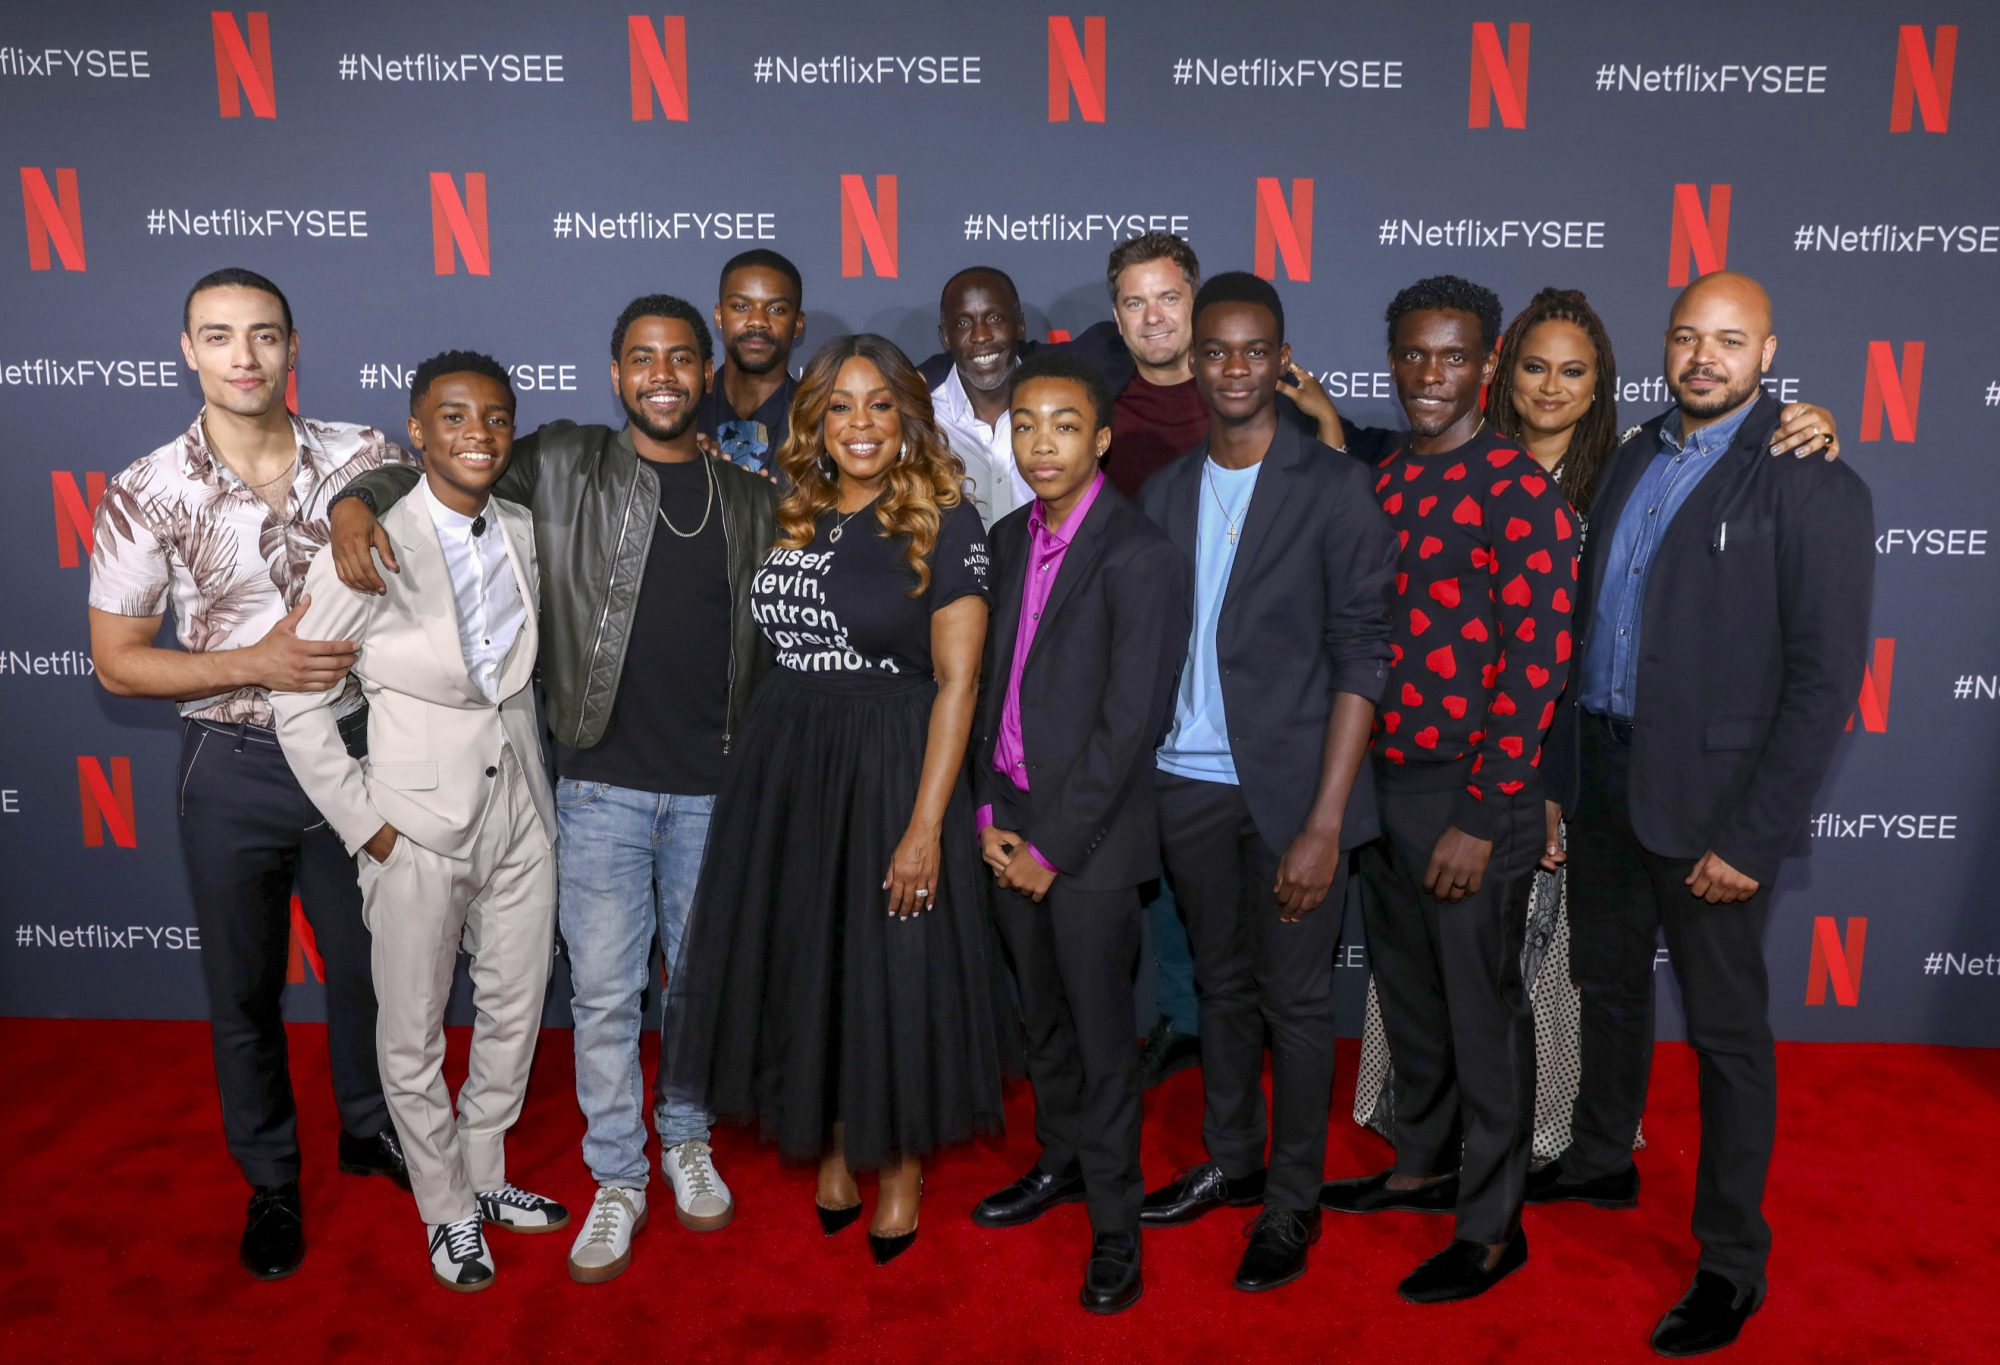 "LOS ANGELES, CALIFORNIA - JUNE 09: Freddy Miyares, Michael K. Williams, Jovan Adepo, Jharrel Jerome, Caleel Harris, Niecy Nash, Asante Blackk, Chris Chalk, Justin Cunningham, Ethan Herisse and Joshua Jackson attend attend the Netflix ""When They See Us"" FYSEE Event at Raleigh Studios on June 09, 2019 in Los Angeles, California. (Photo by Handout/Getty Images for Netflix)"